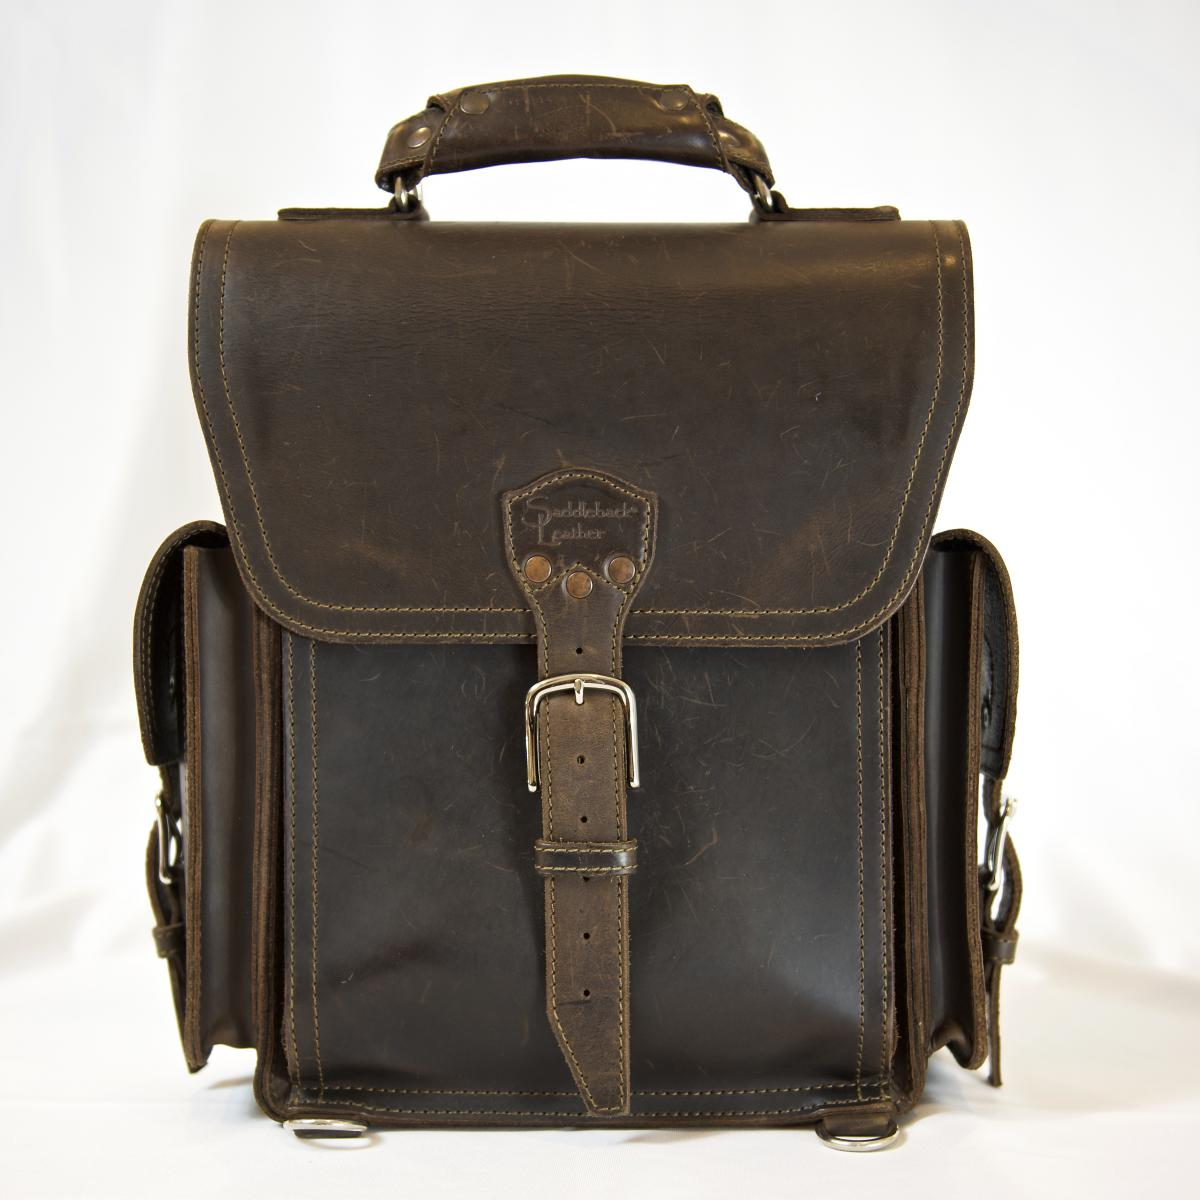 Saddleback Leather Retired Tank Backpack - Dark Coffee ... Saddleback Leather